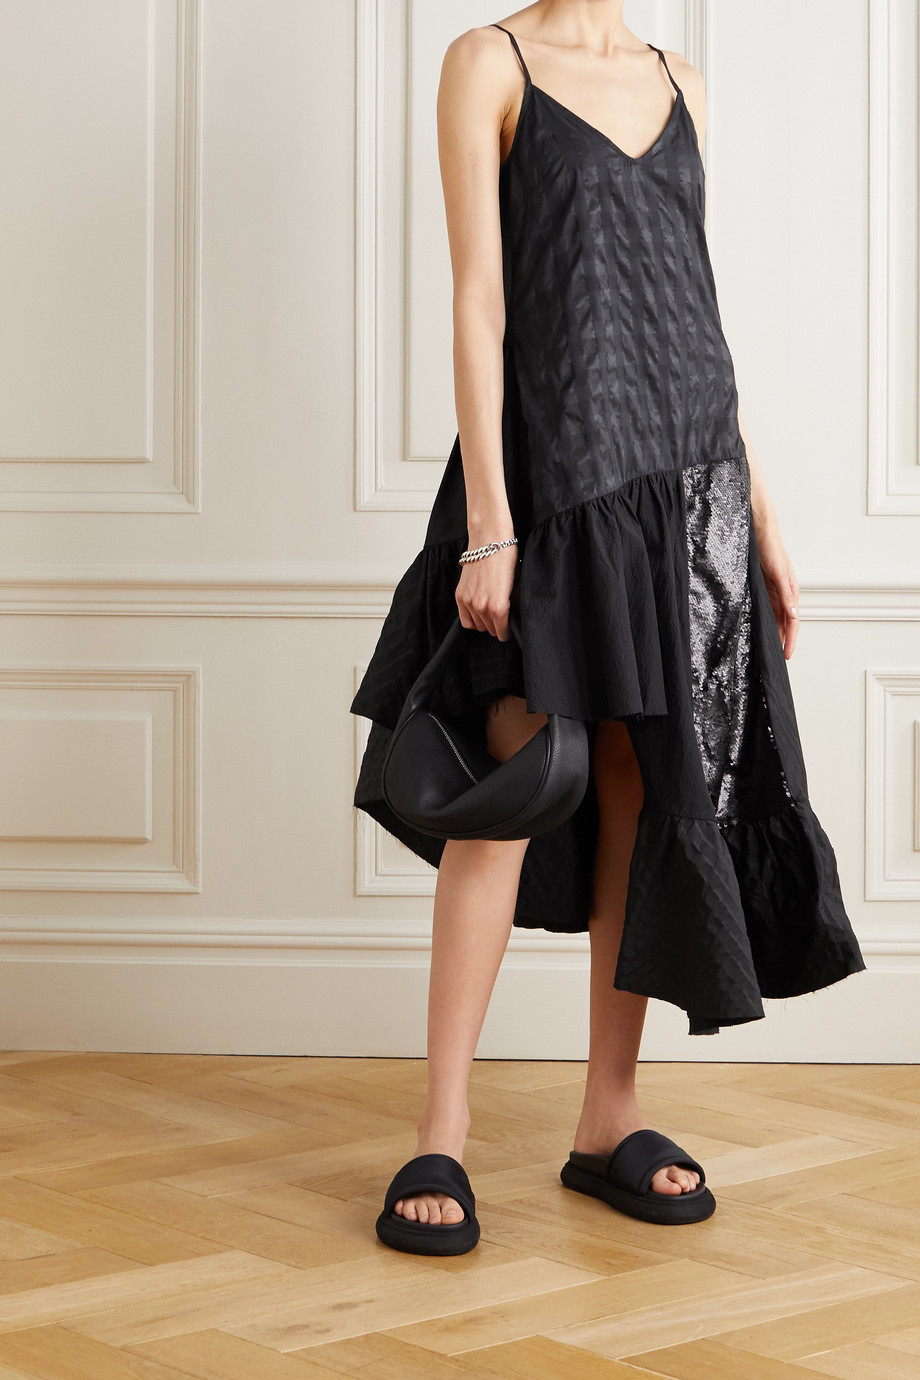 MARQUES' ALMEIDA + NET SUSTAIN ReM'Ade by Marques' Almeida cotton and sequined tulle dress